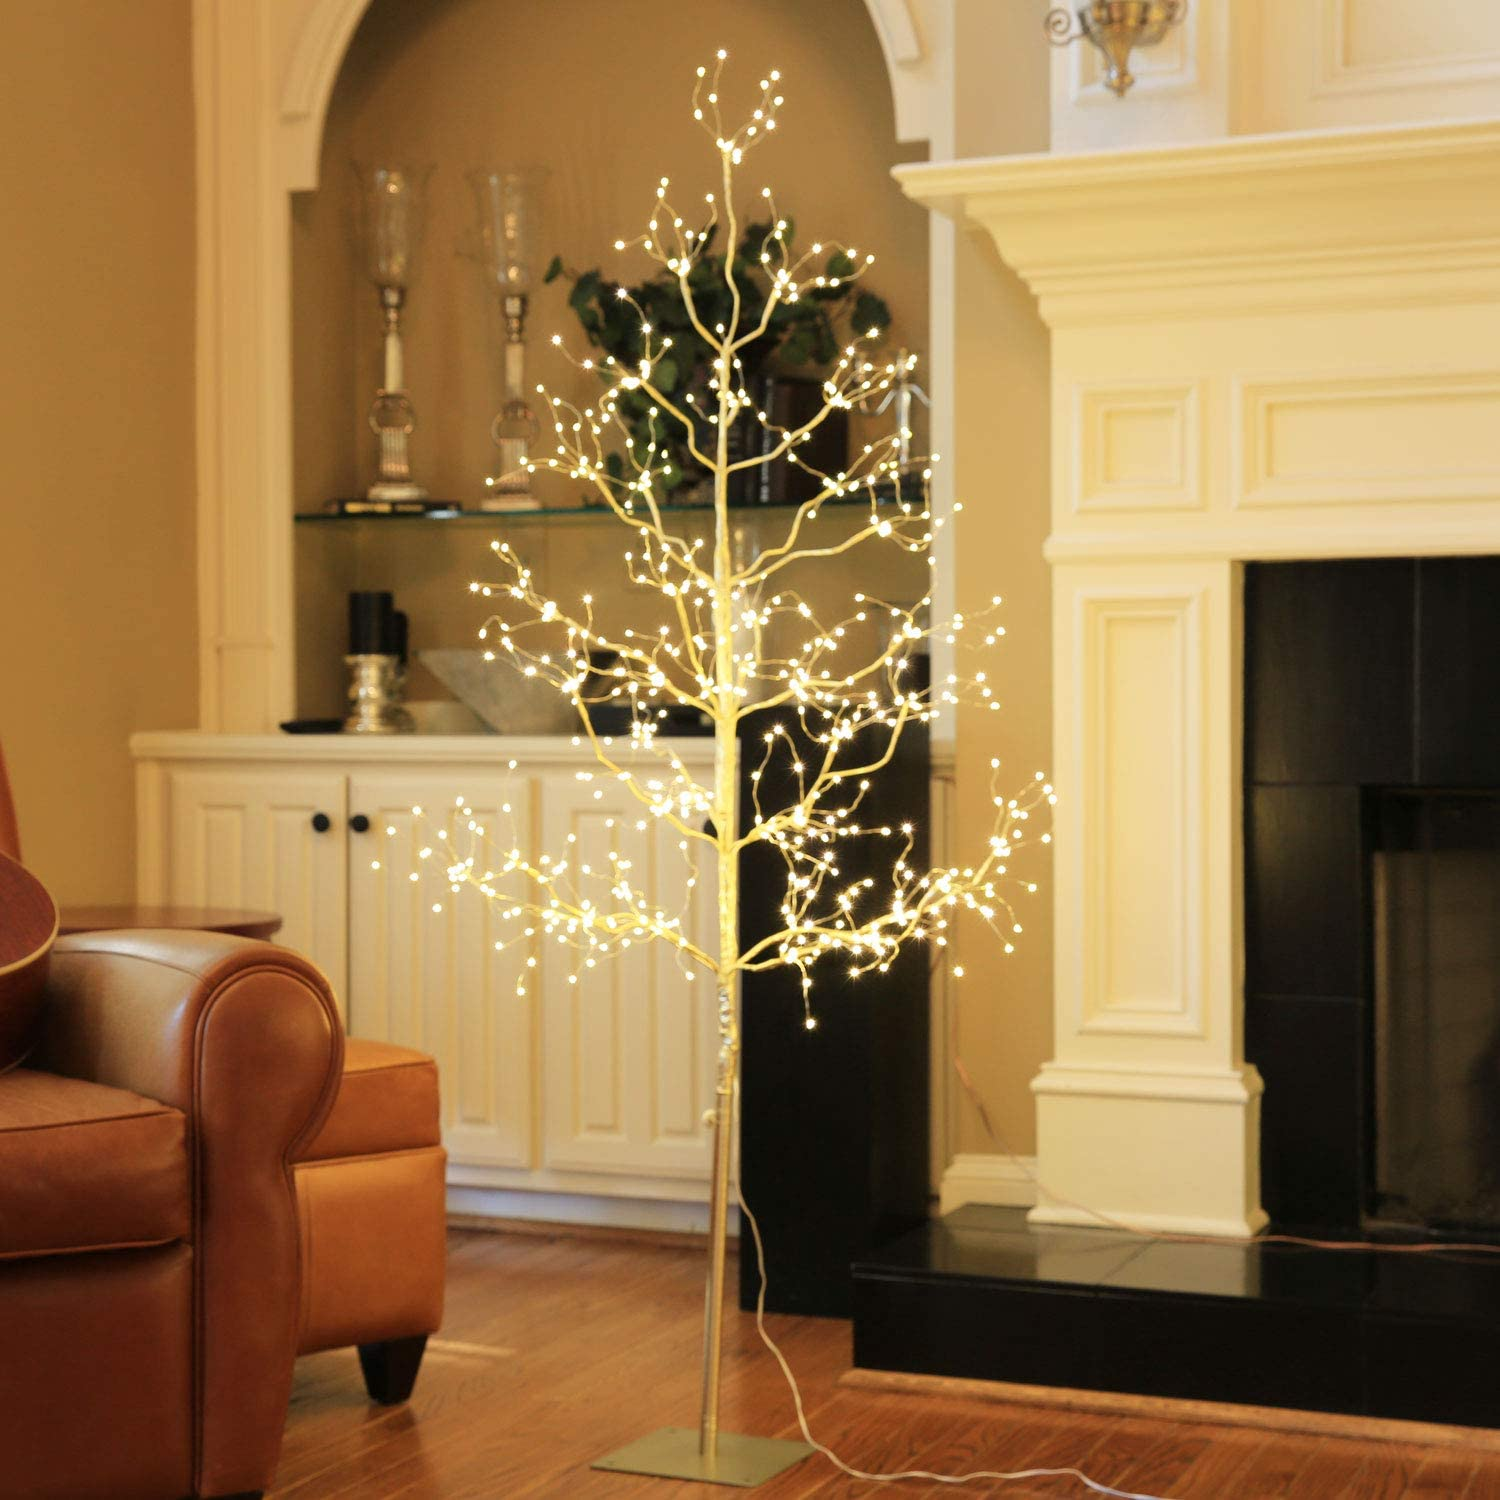 LIGHTSHARE 4 ft. Tree String - 450L Starlit Tree Collection with Warm White LED Angel Lights, Gold, Perfect for Home Décor Holiday Party Wedding